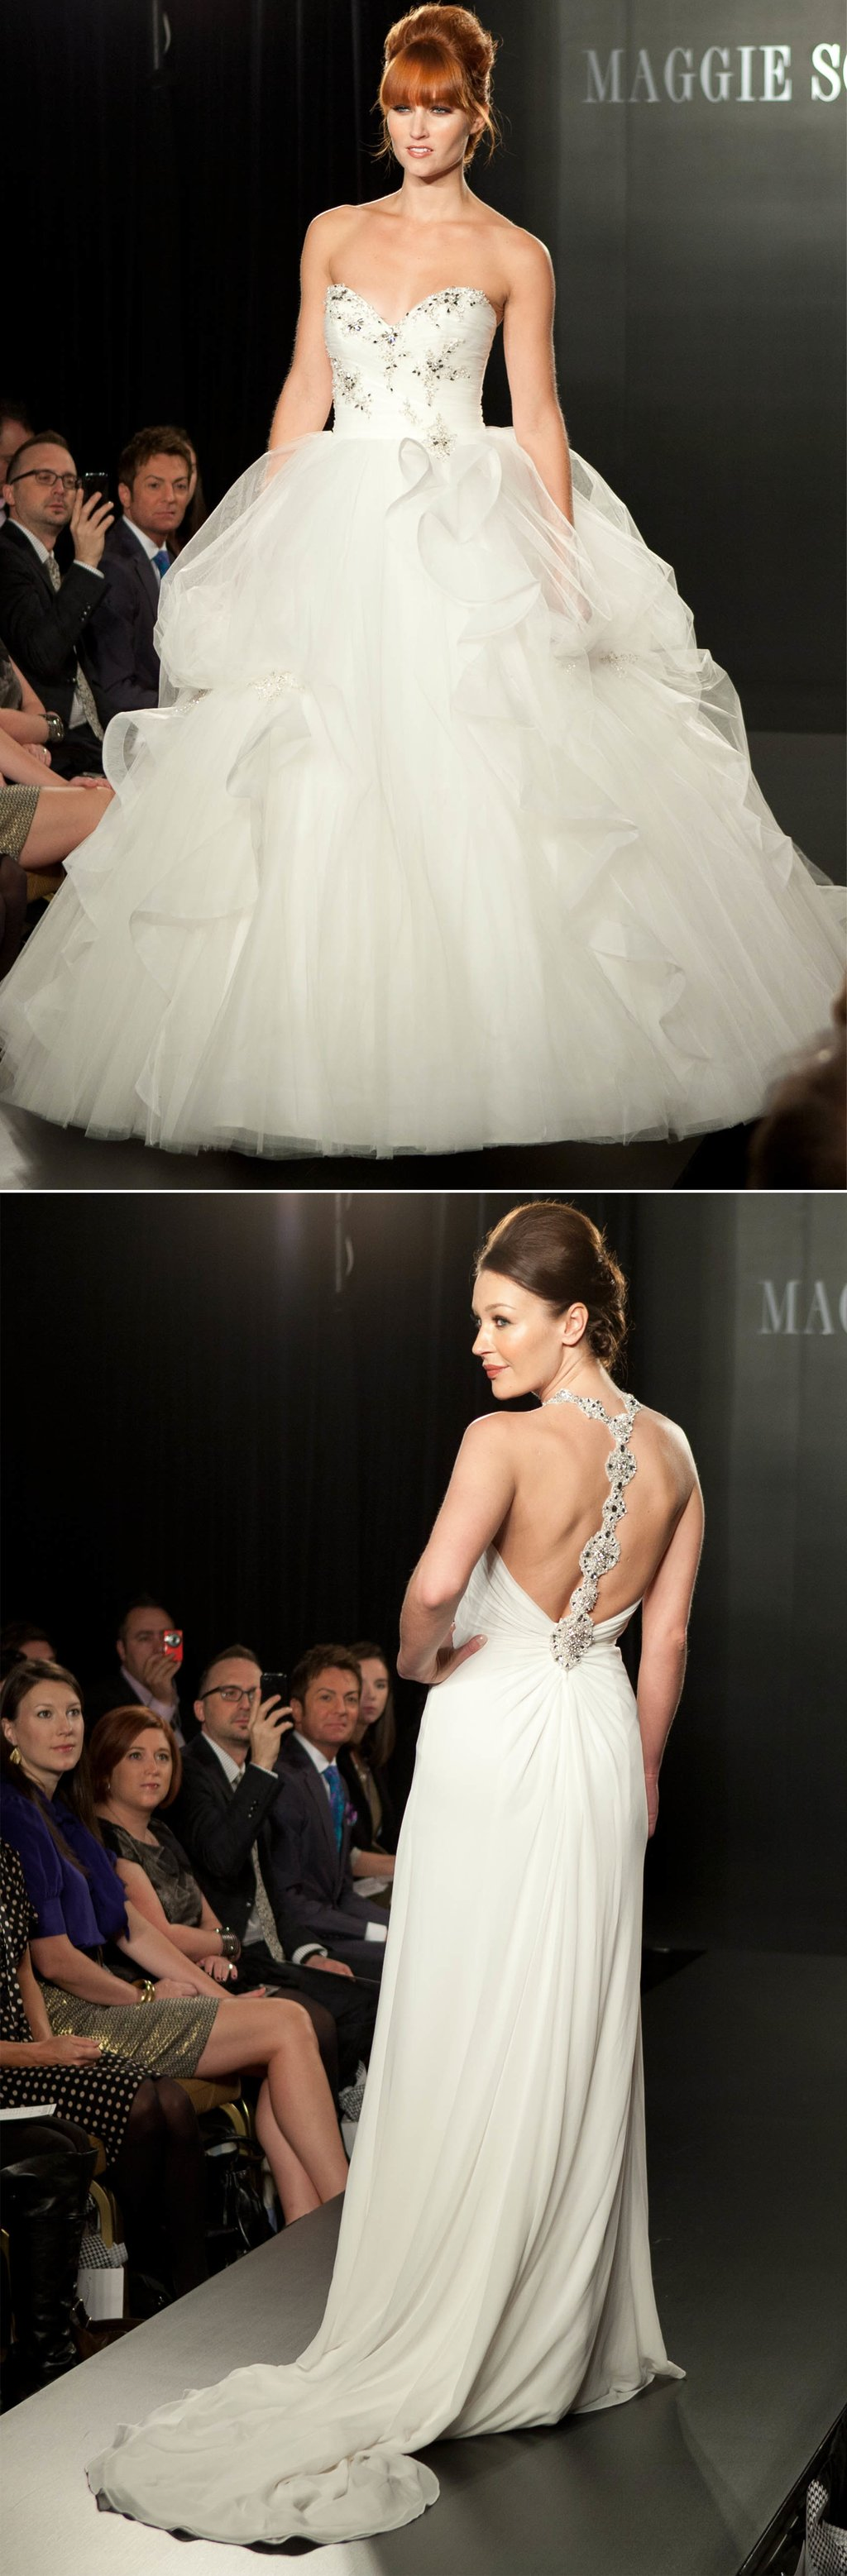 Maggie-sottero-wedding-dress-beaded-2012-bridal-gowns.full